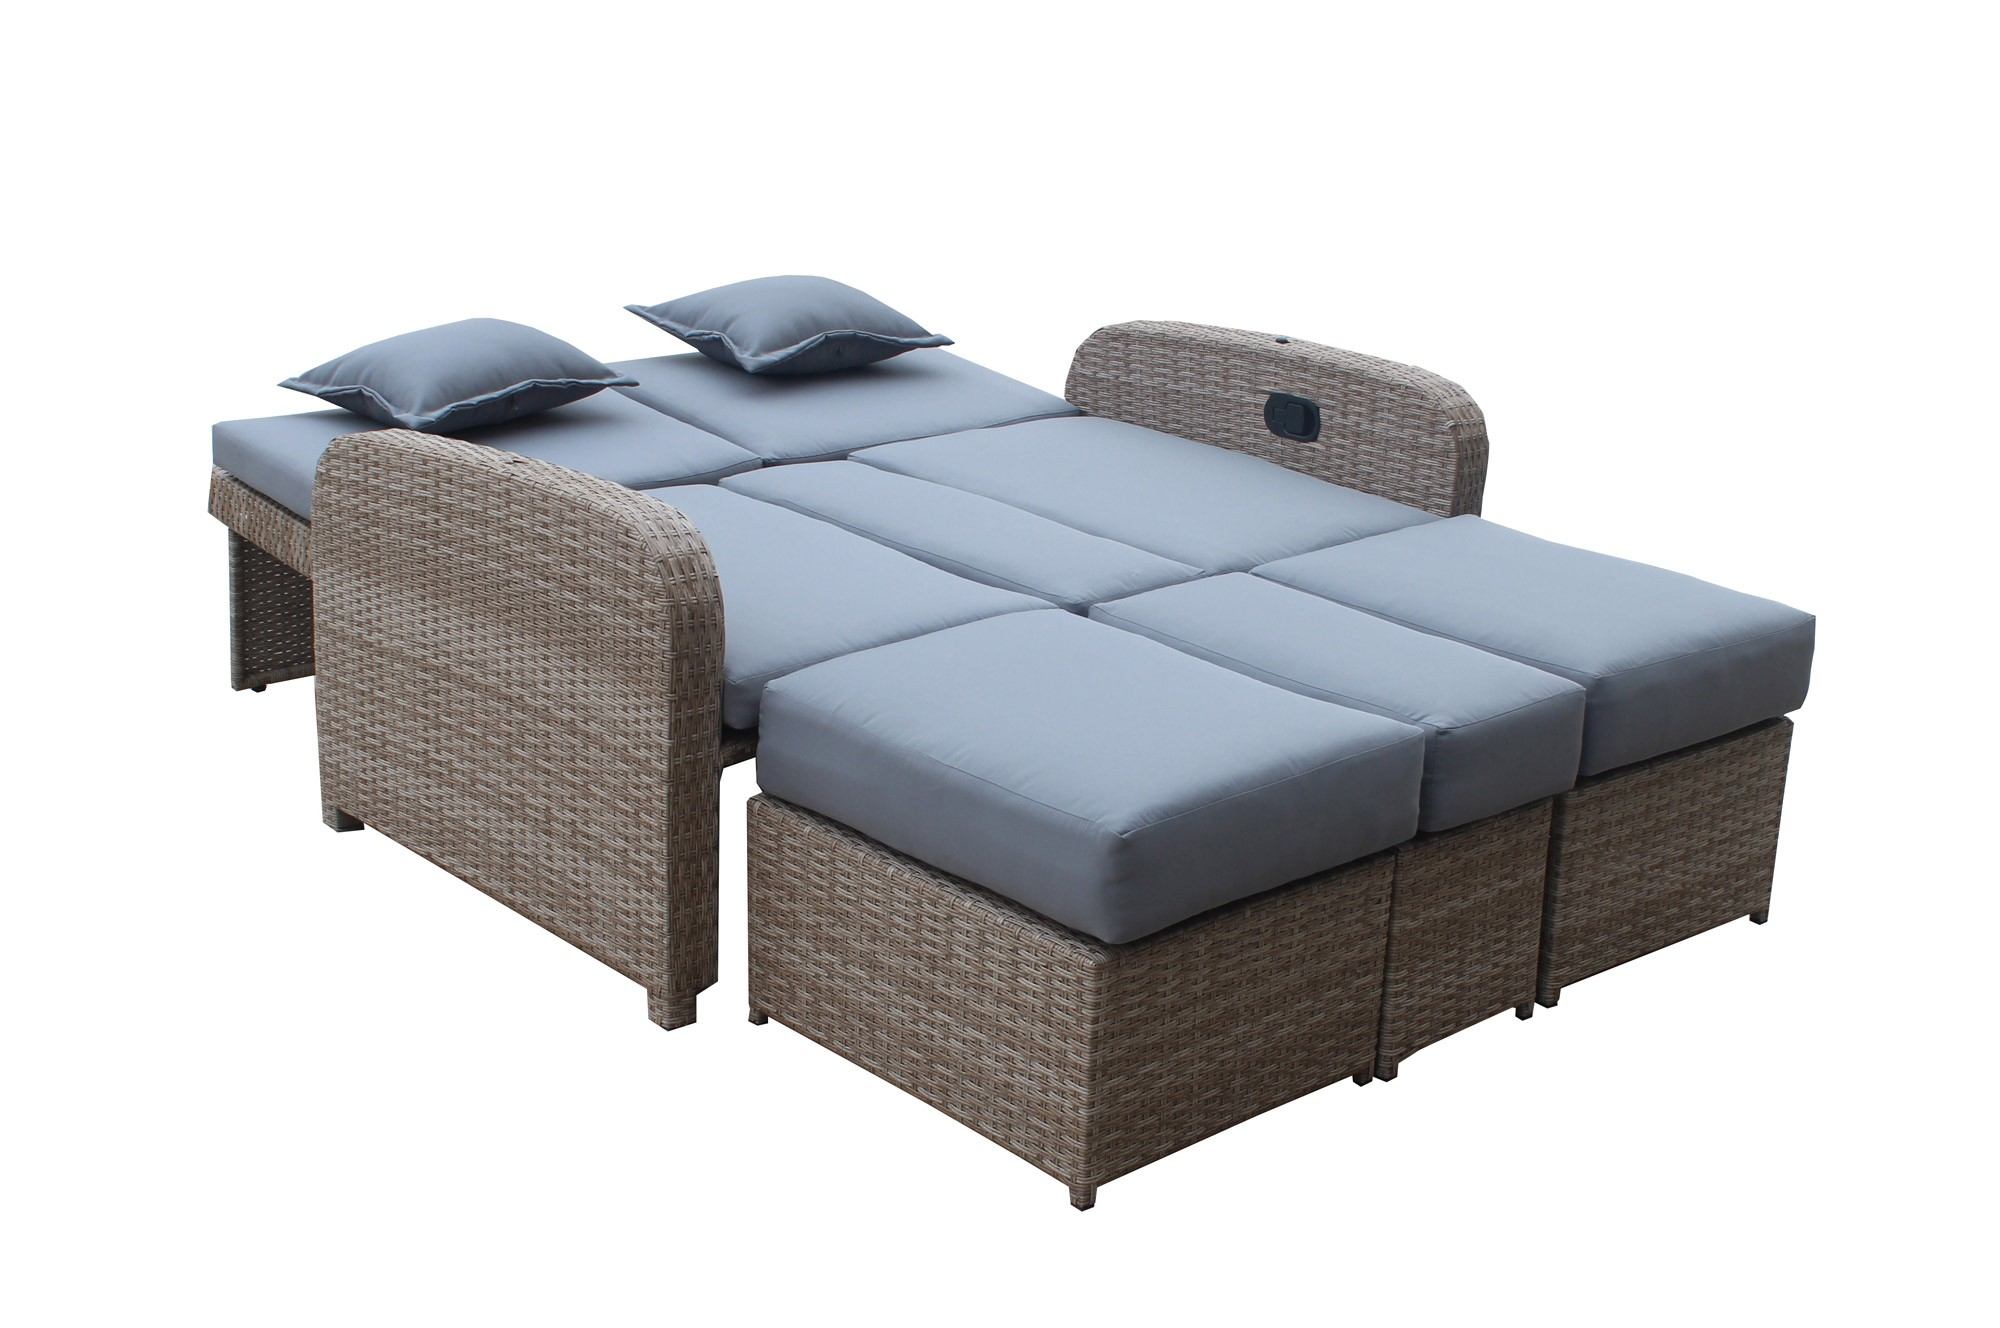 gartensofa mit sonnendach die sch nsten einrichtungsideen. Black Bedroom Furniture Sets. Home Design Ideas